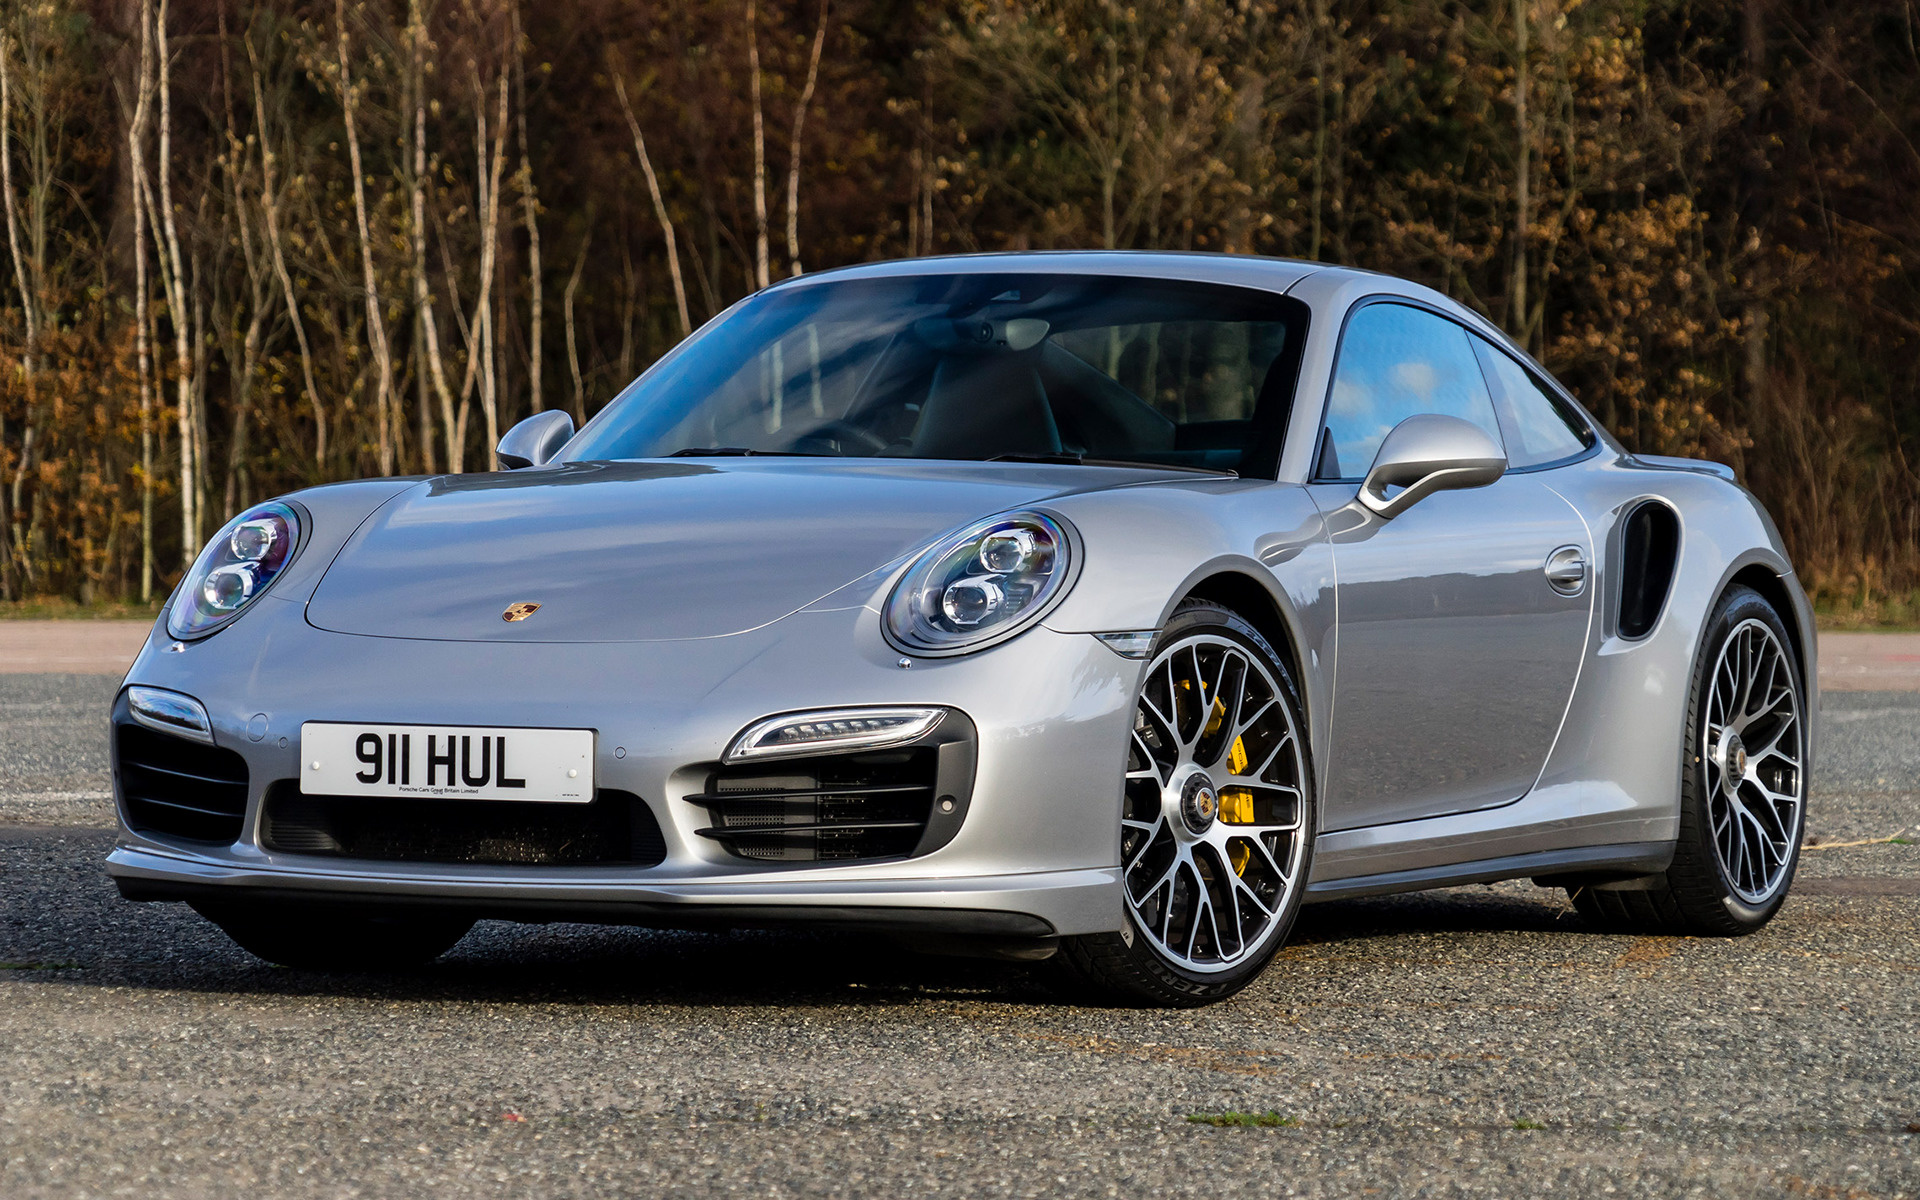 Porsche 911 Turbo S (2013) UK Wallpapers and HD Images ...